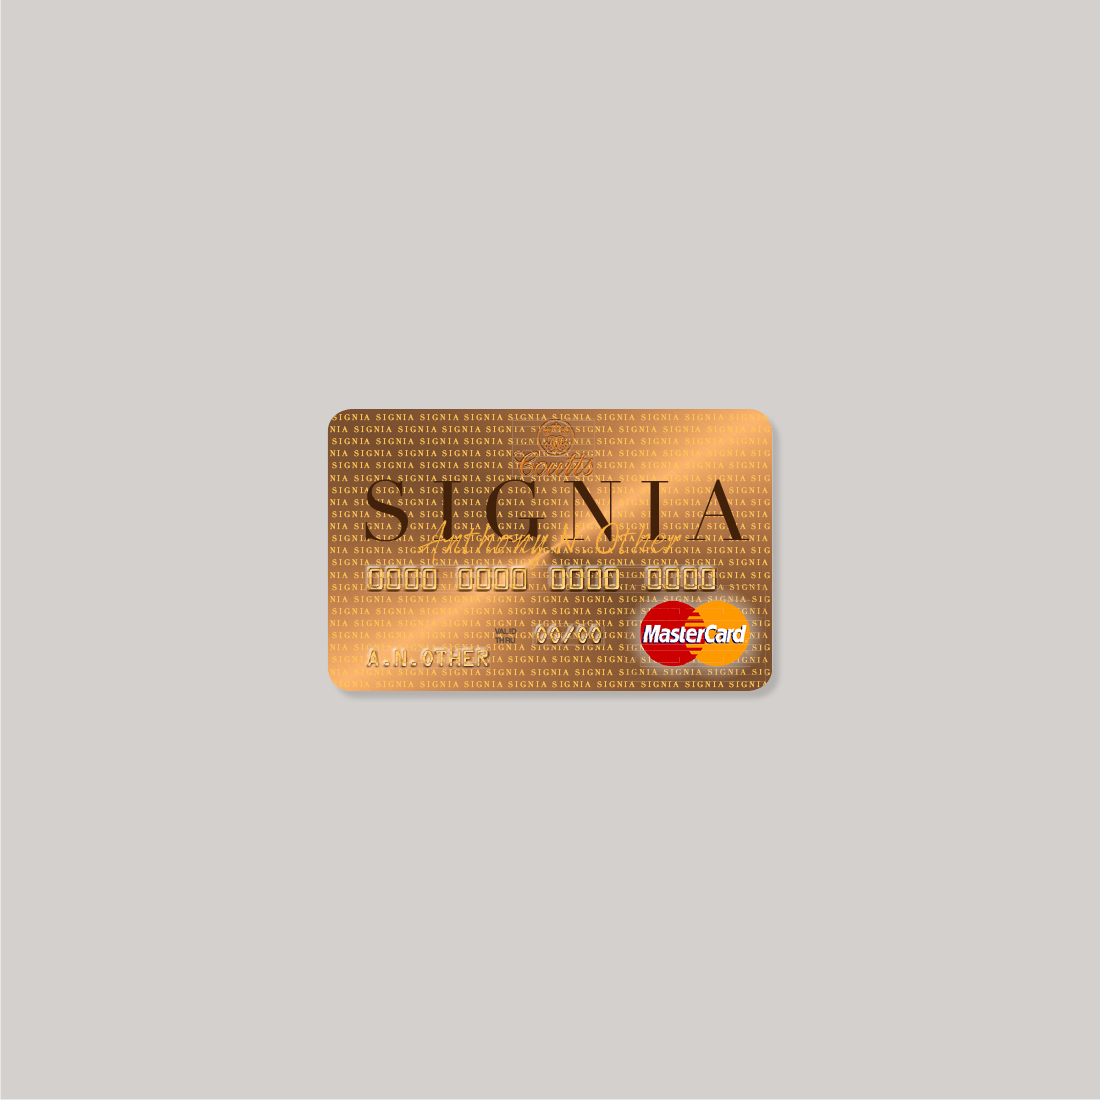 Coutts Signia Credit Card